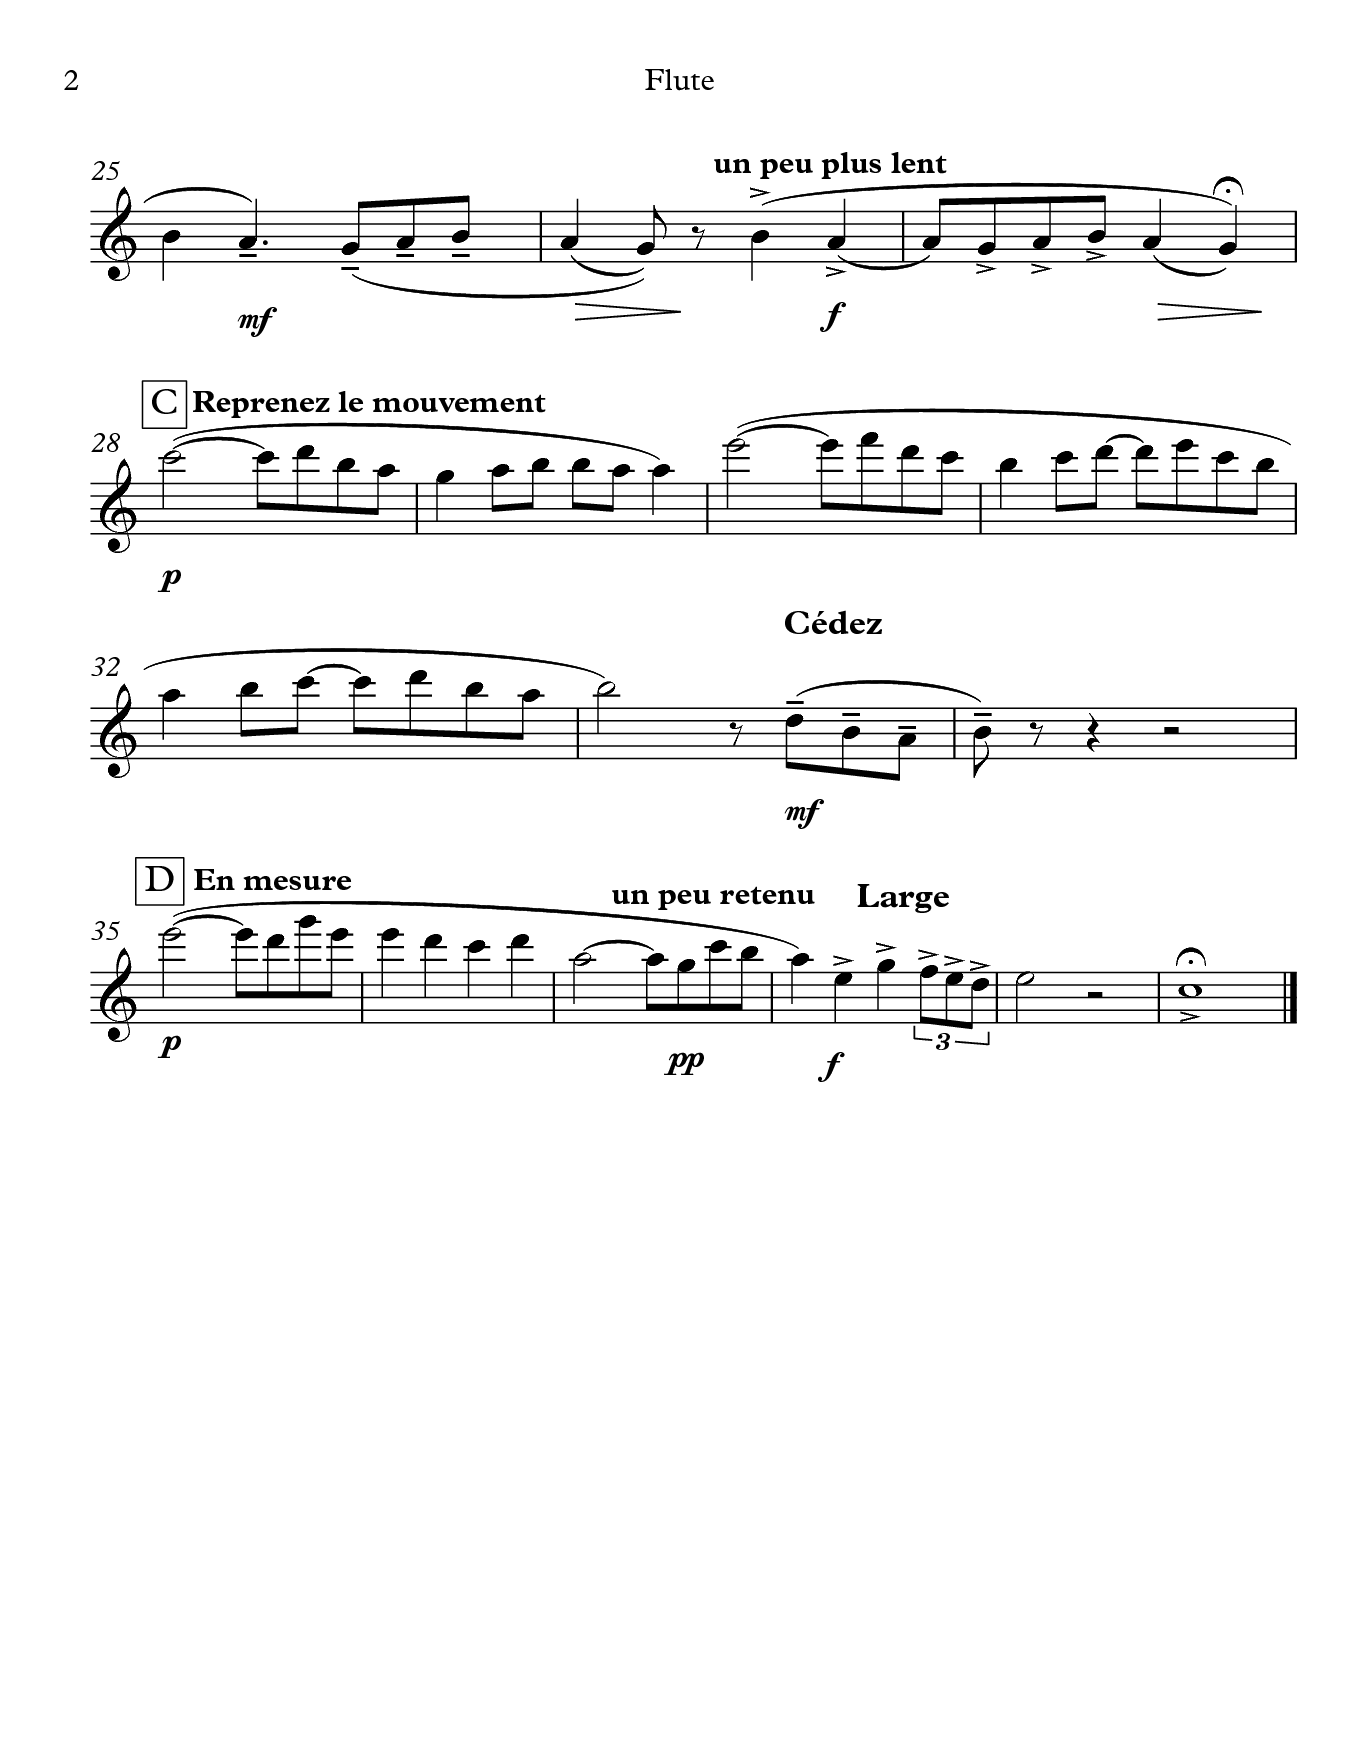 Pavane pour une infante defunte by Ravel. Sheet music for Flute, page 2.